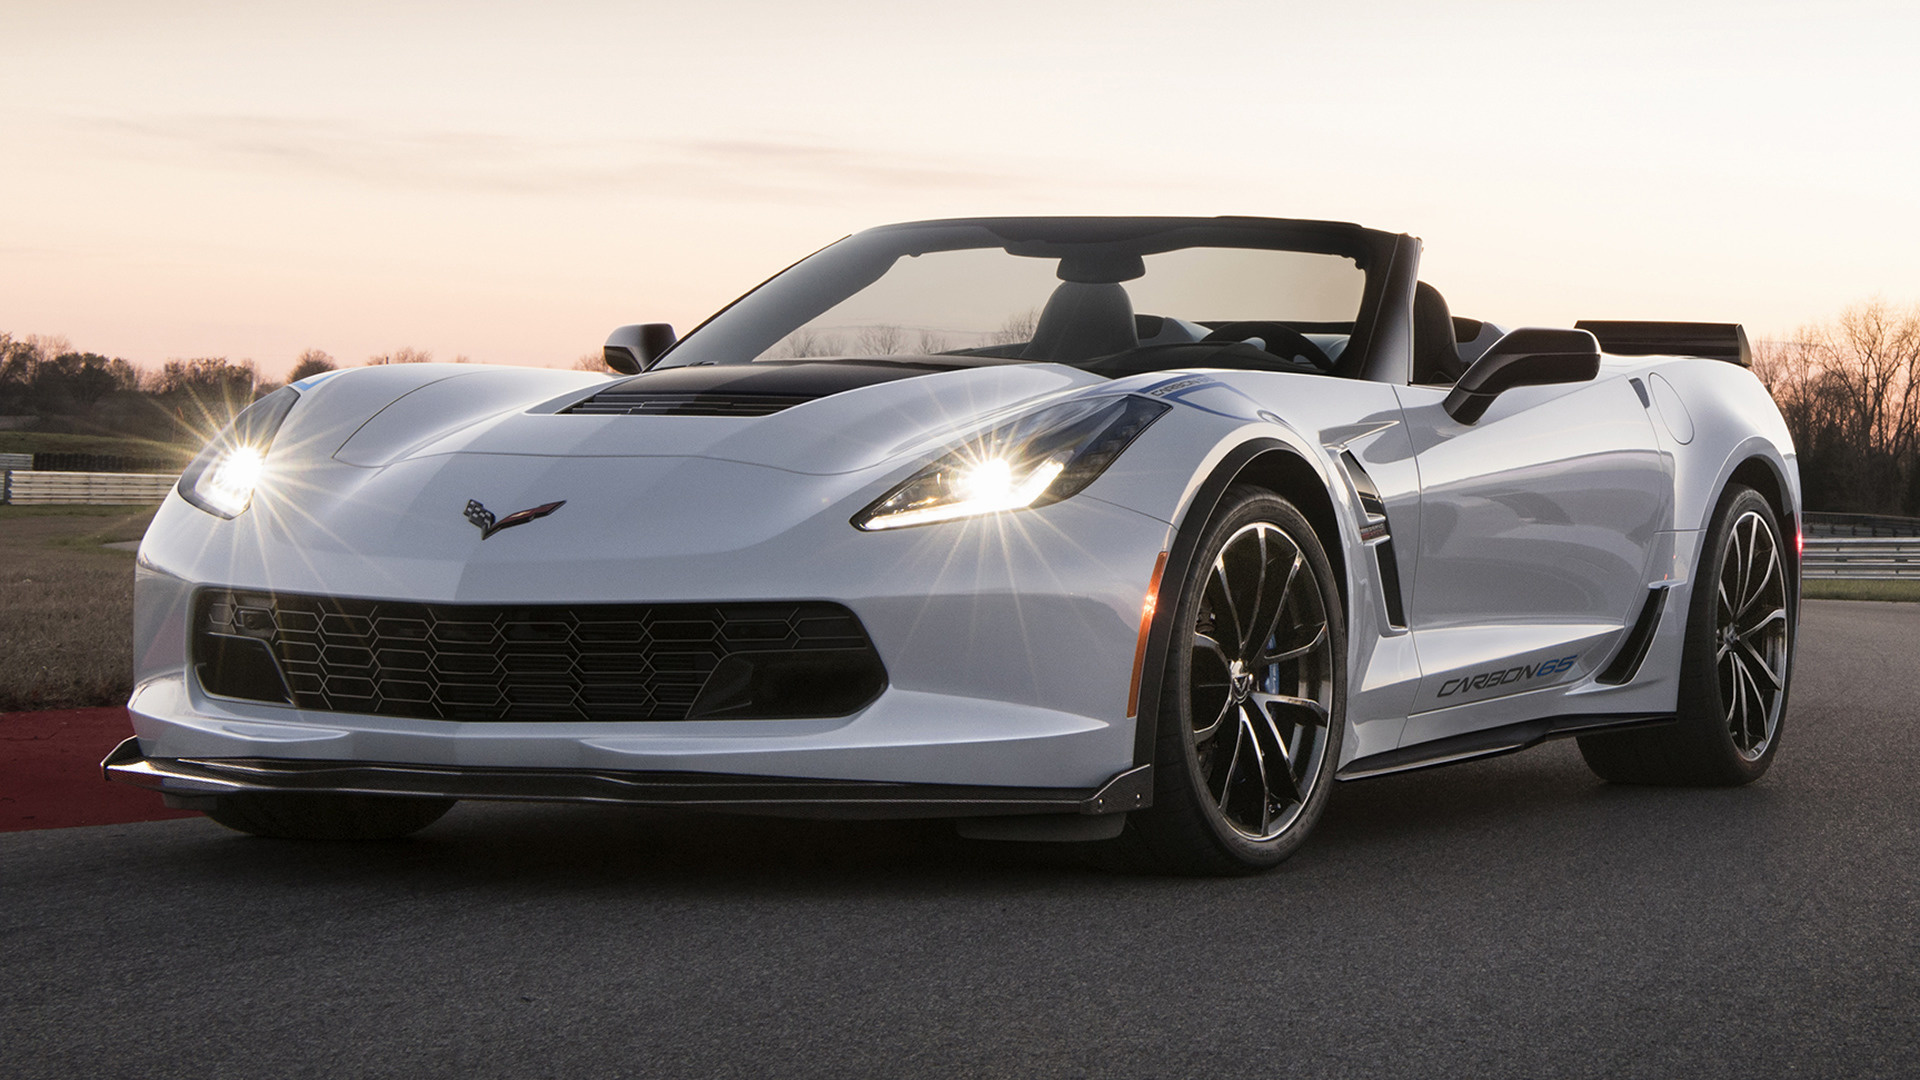 Corvette grand sport 2017 wallpapers and hd images car pixel - Chevrolet Corvette Grand Sport Convertible Carbon 65